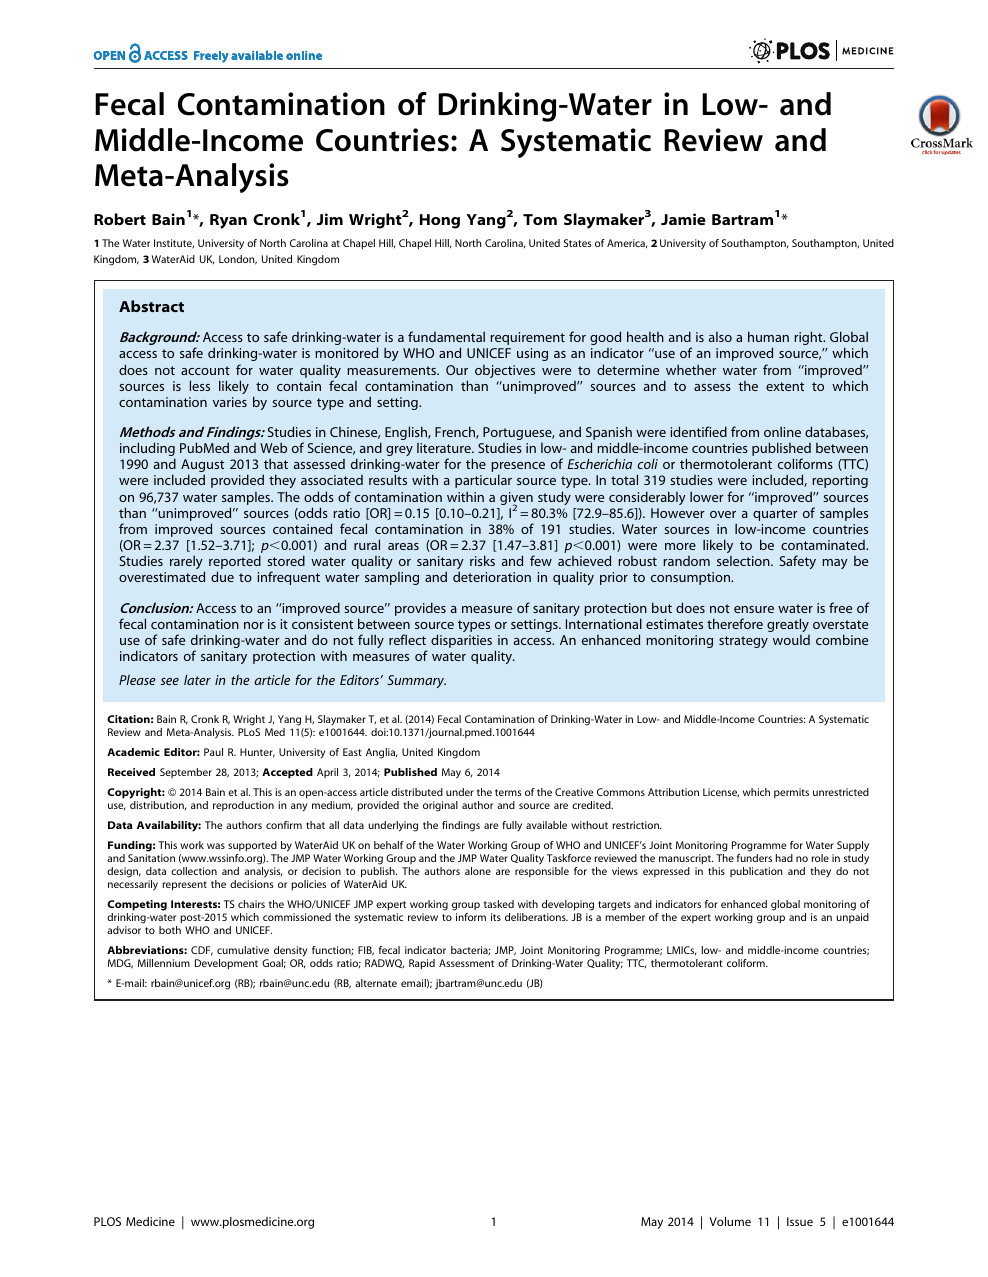 Fecal Contamination of Drinking-Water in Low- and Middle